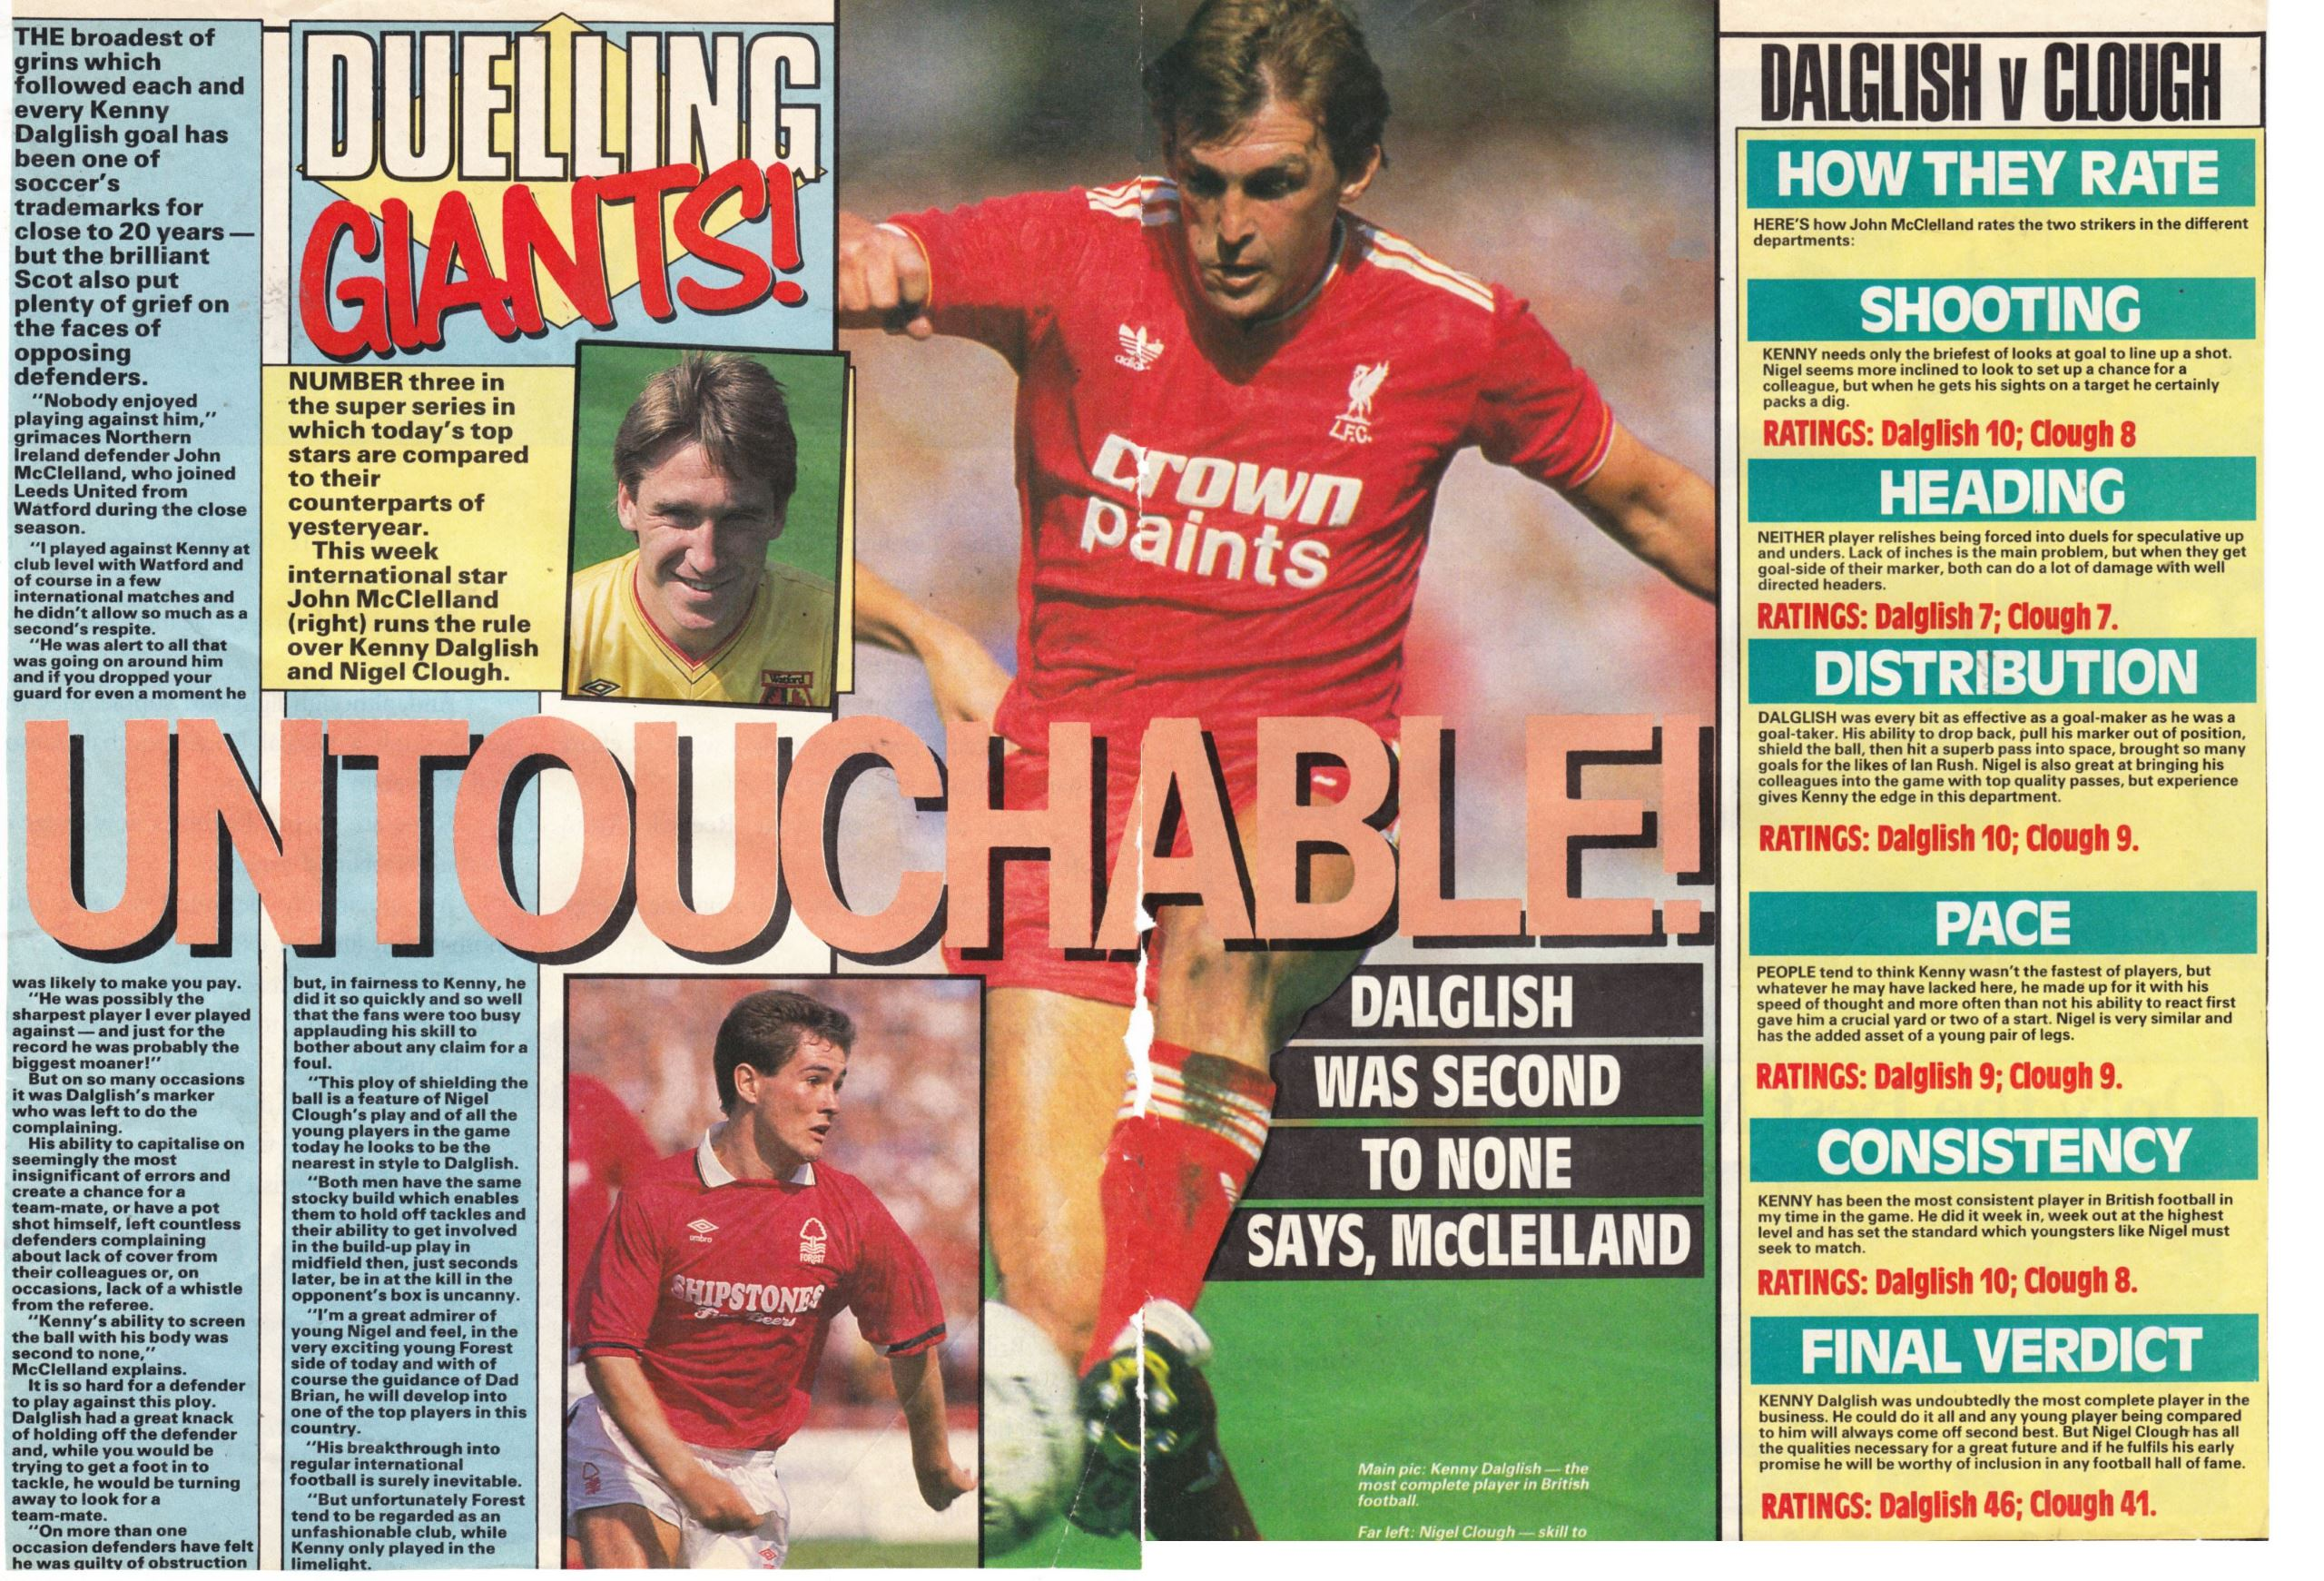 Duelling giants - Nigel Clough vs. Kenny Dalglish - 1989